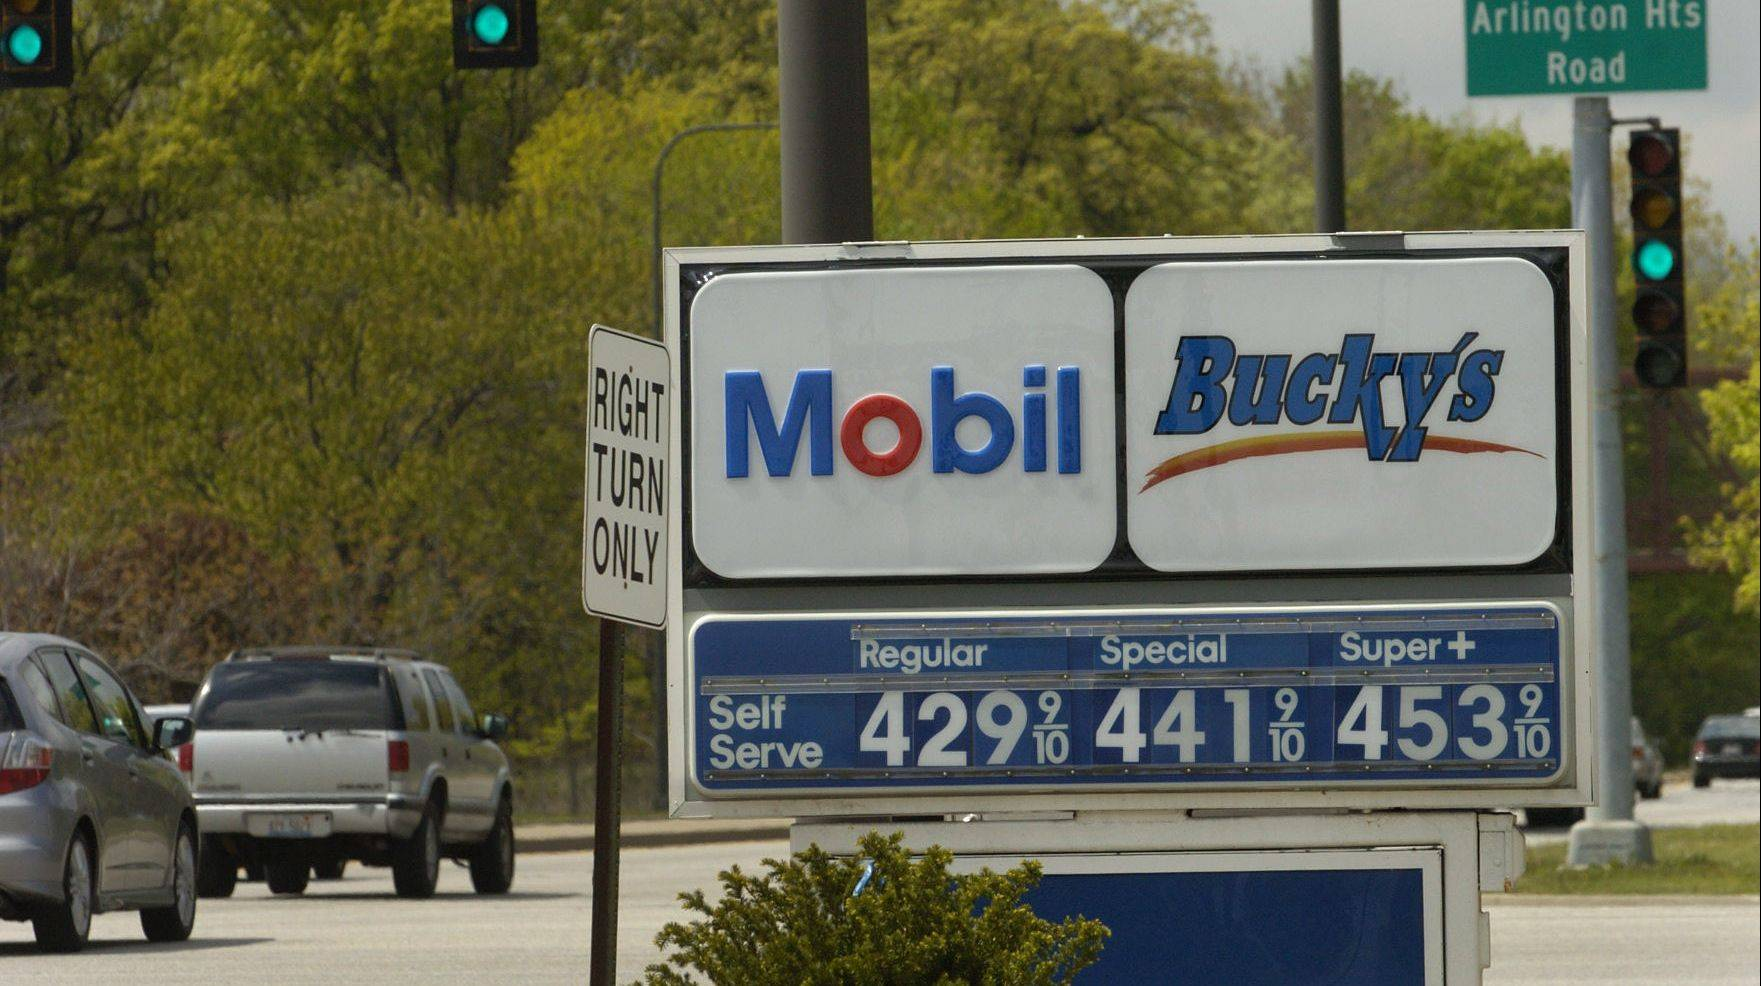 Prices at this Elk Grove Village Mobil station reflect high gas costs across the region. Experts say that because they're so tied to geopolitical events, there's no way of knowing which direction gas prices will head in the future.